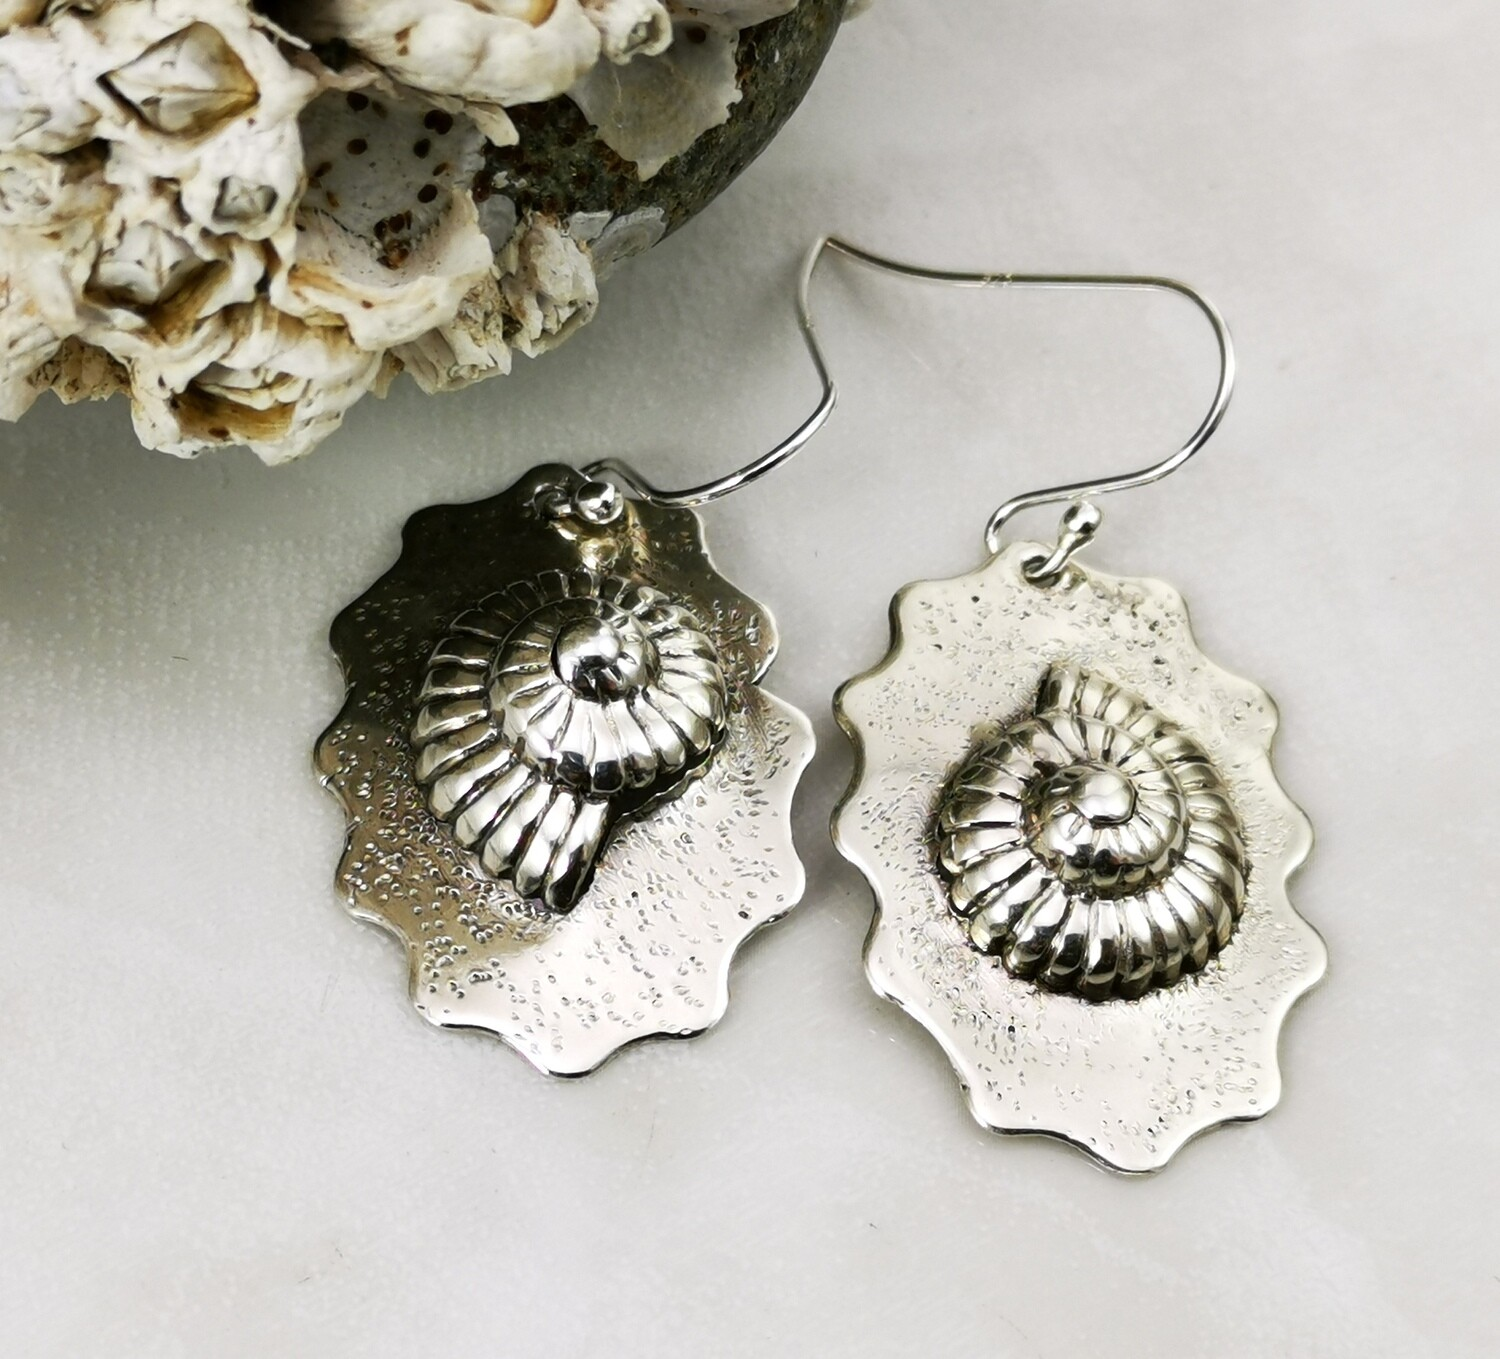 NAUTILUS Ruffled Sterling Silver Repousse Handmade Earrings